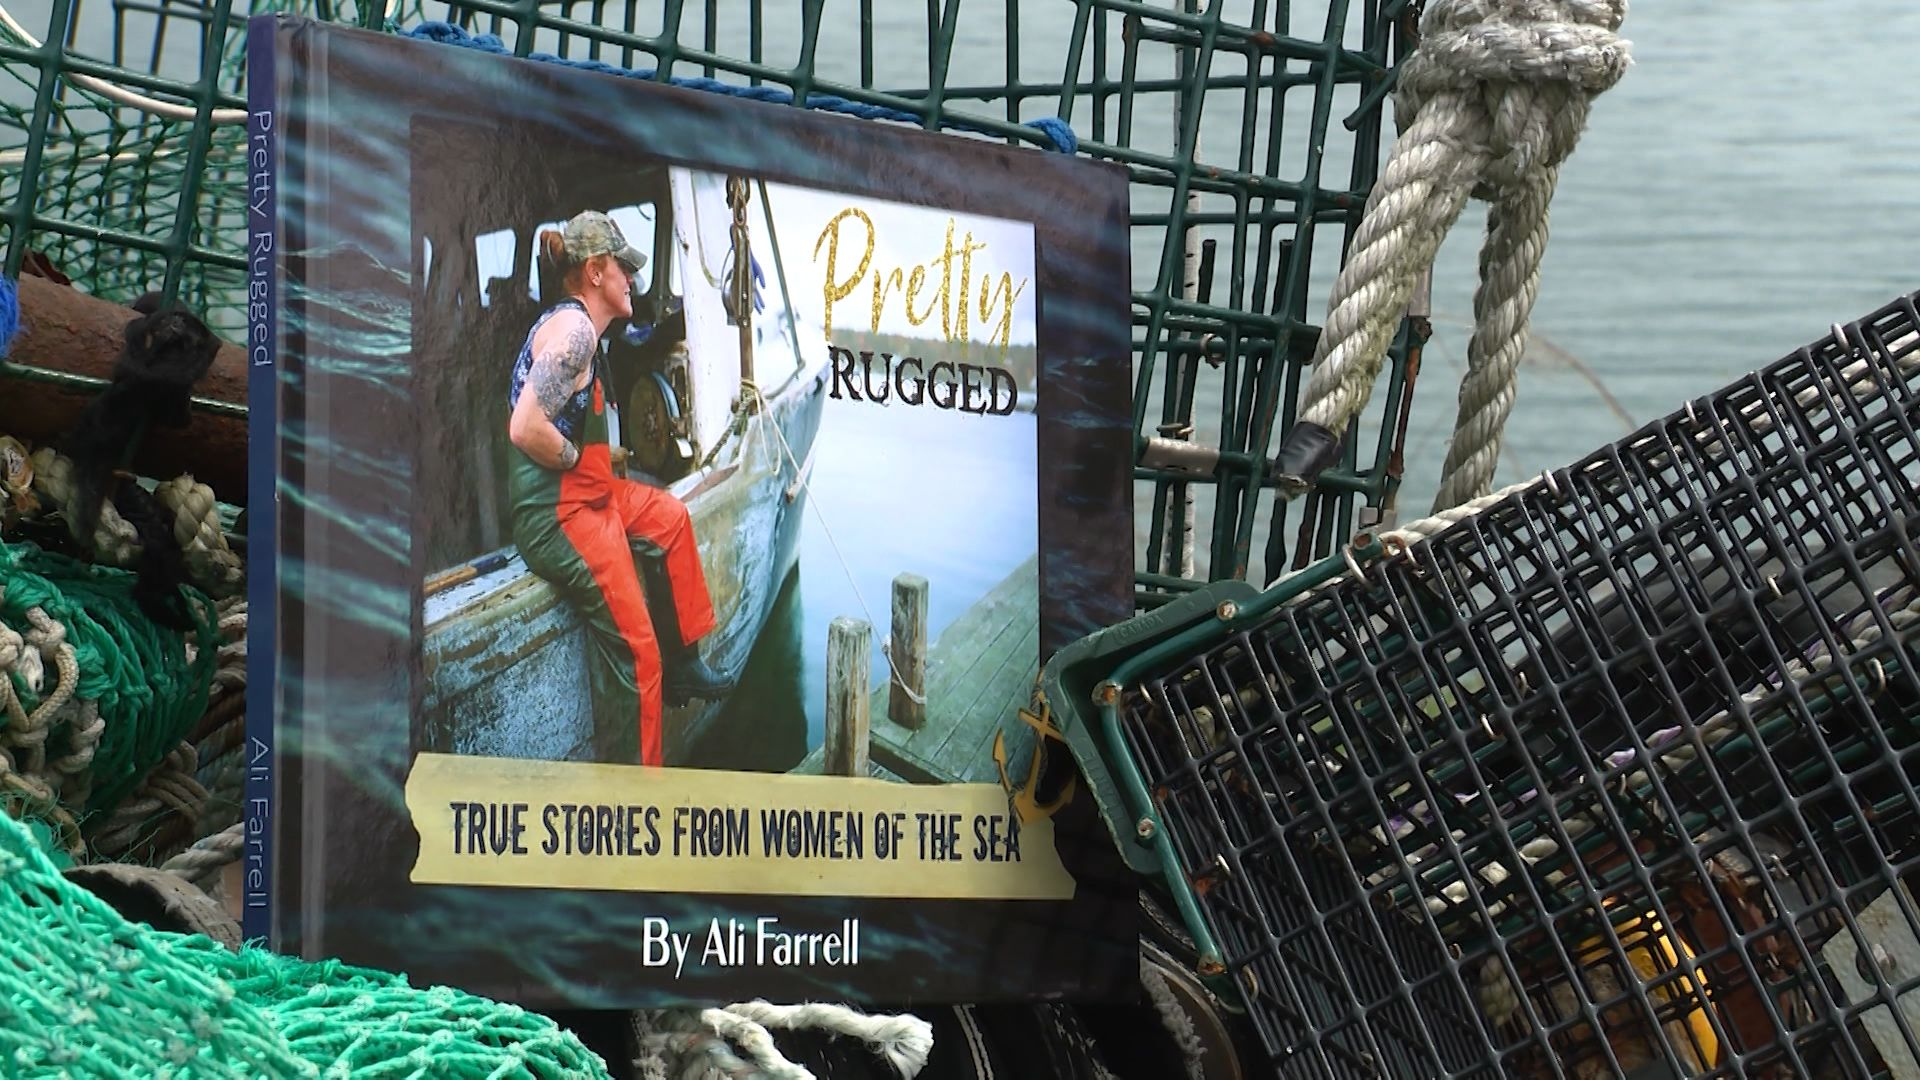 Author tells stories of Maine's 'pretty rugged' women lobstermen